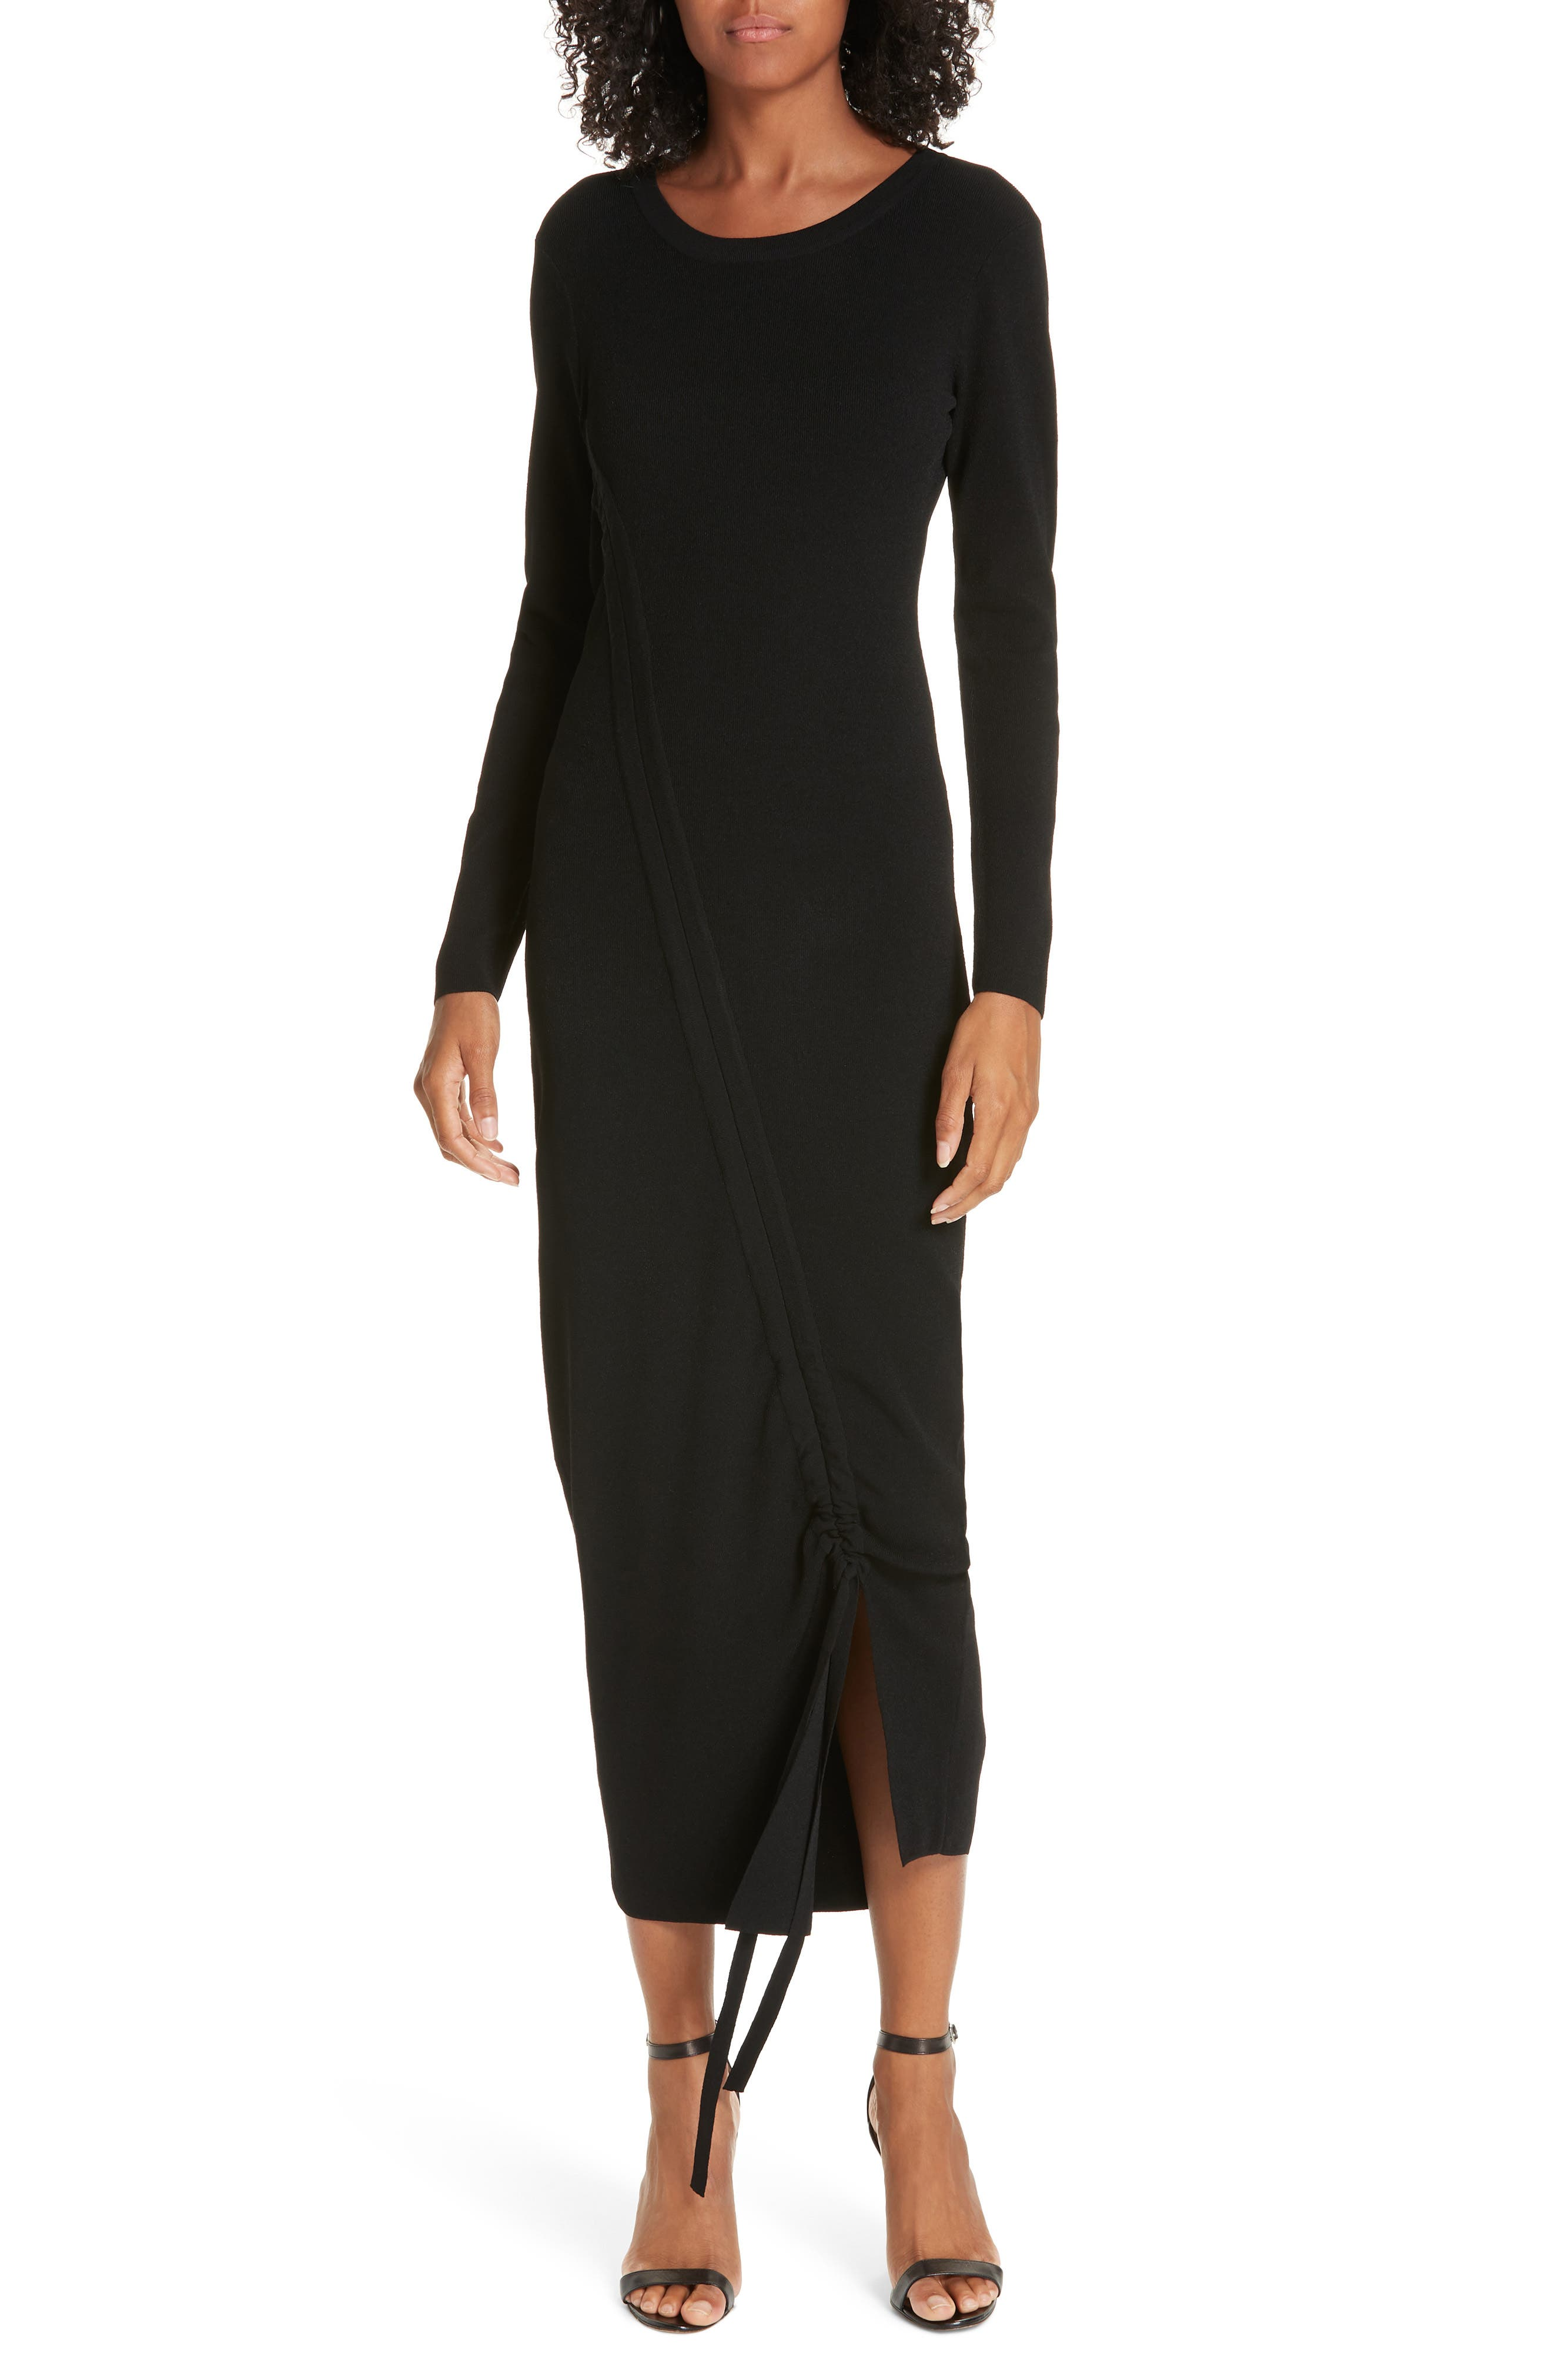 Milly Diagonal Ruched Tunnel Dress, Size Petite - Black